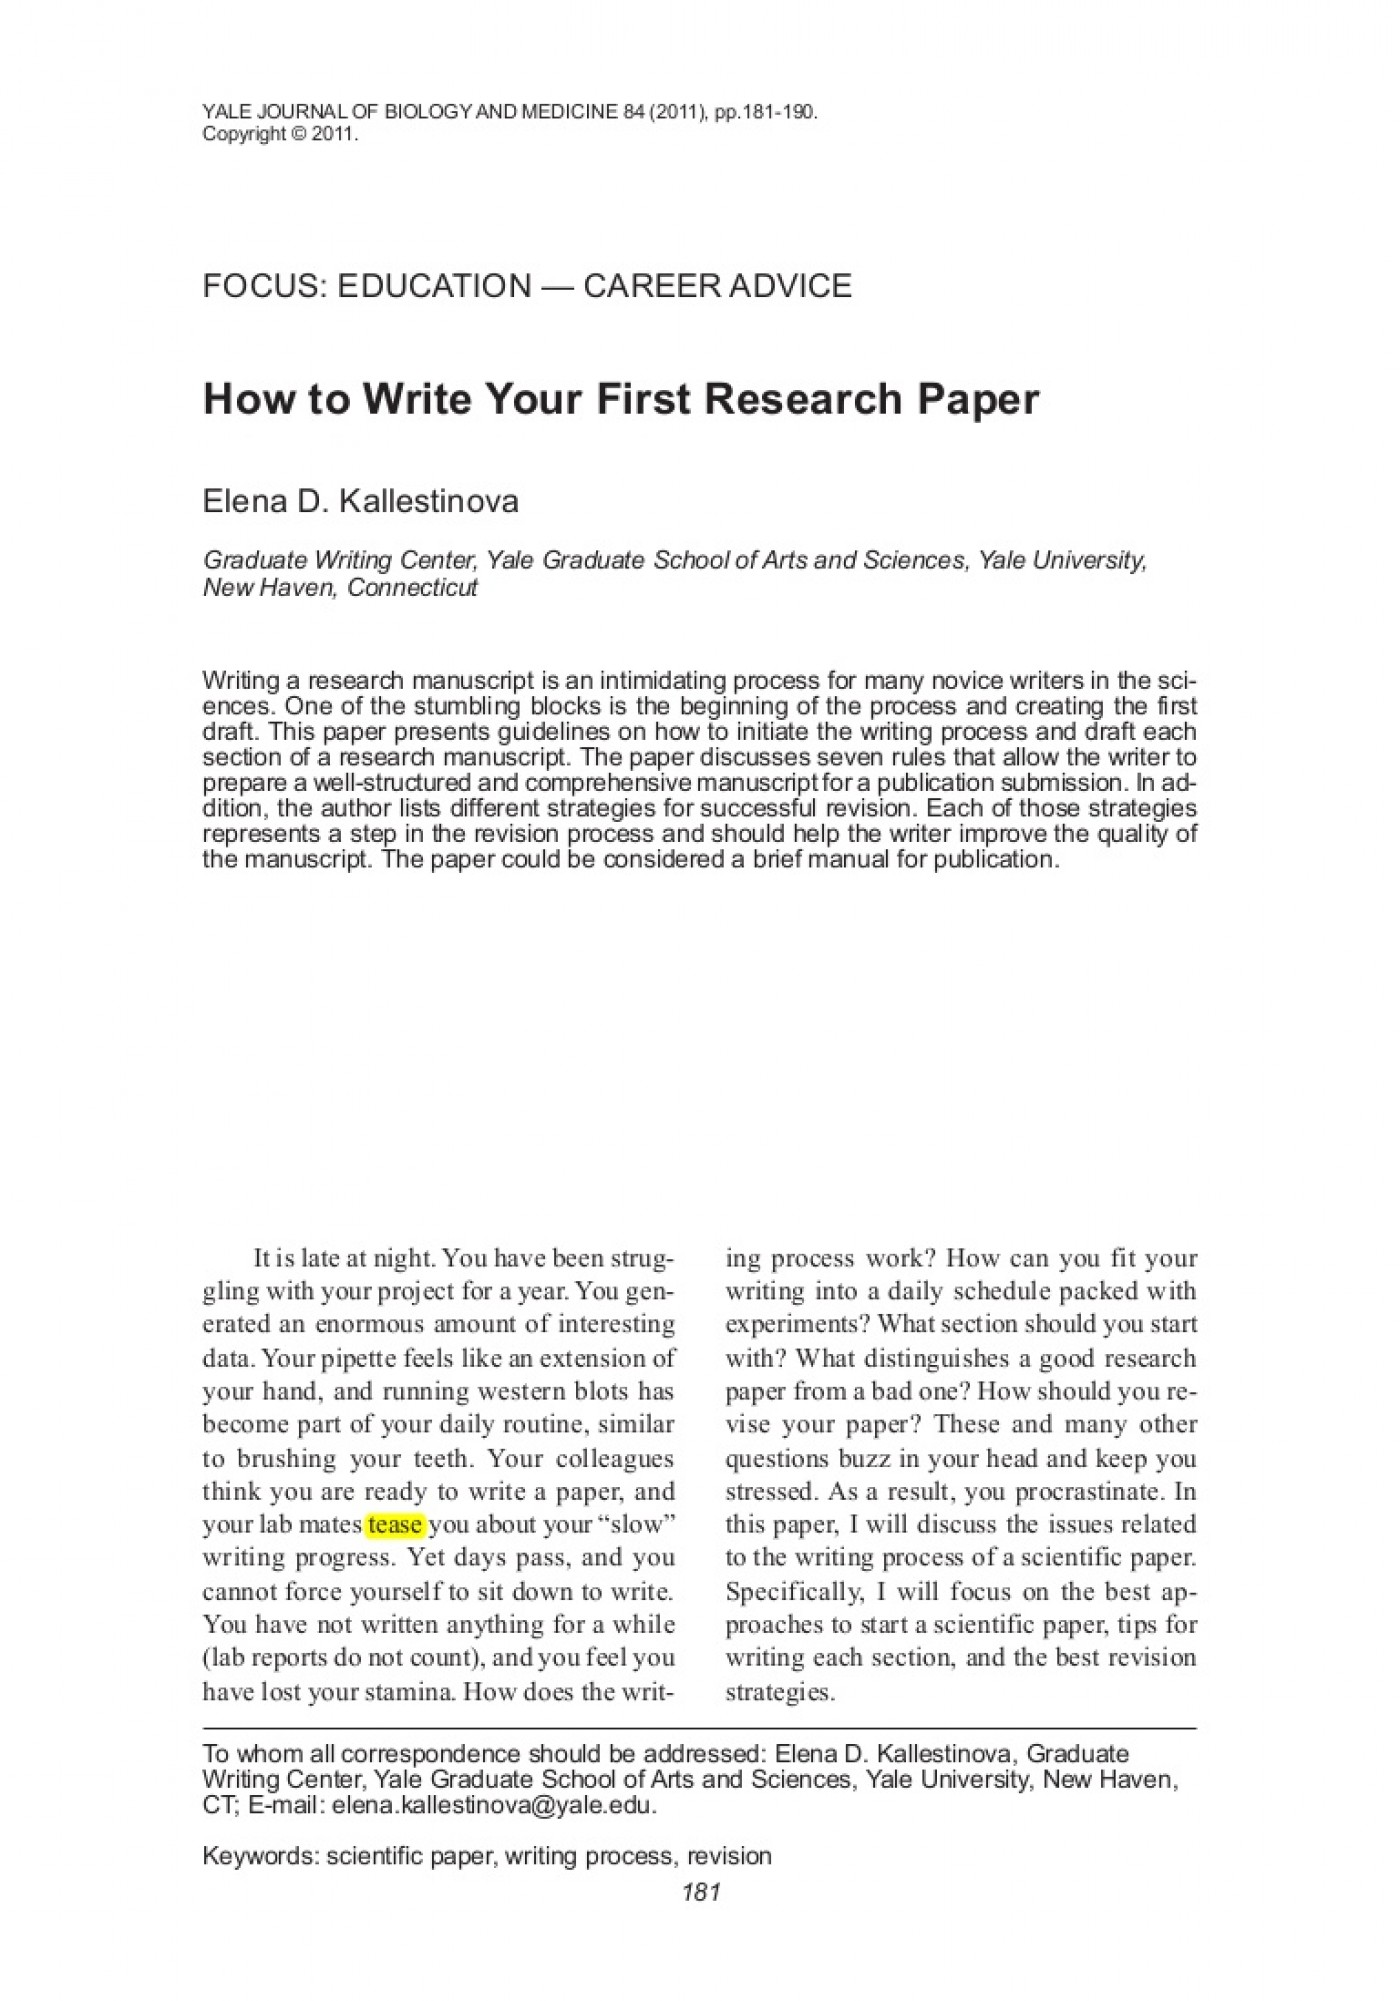 024 Research Paper Write Papers Howtowriteyourfirstresearchpaper Lva1 App6891 Thumbnail Frightening How To A Introduction Apa Service In Latex 1400